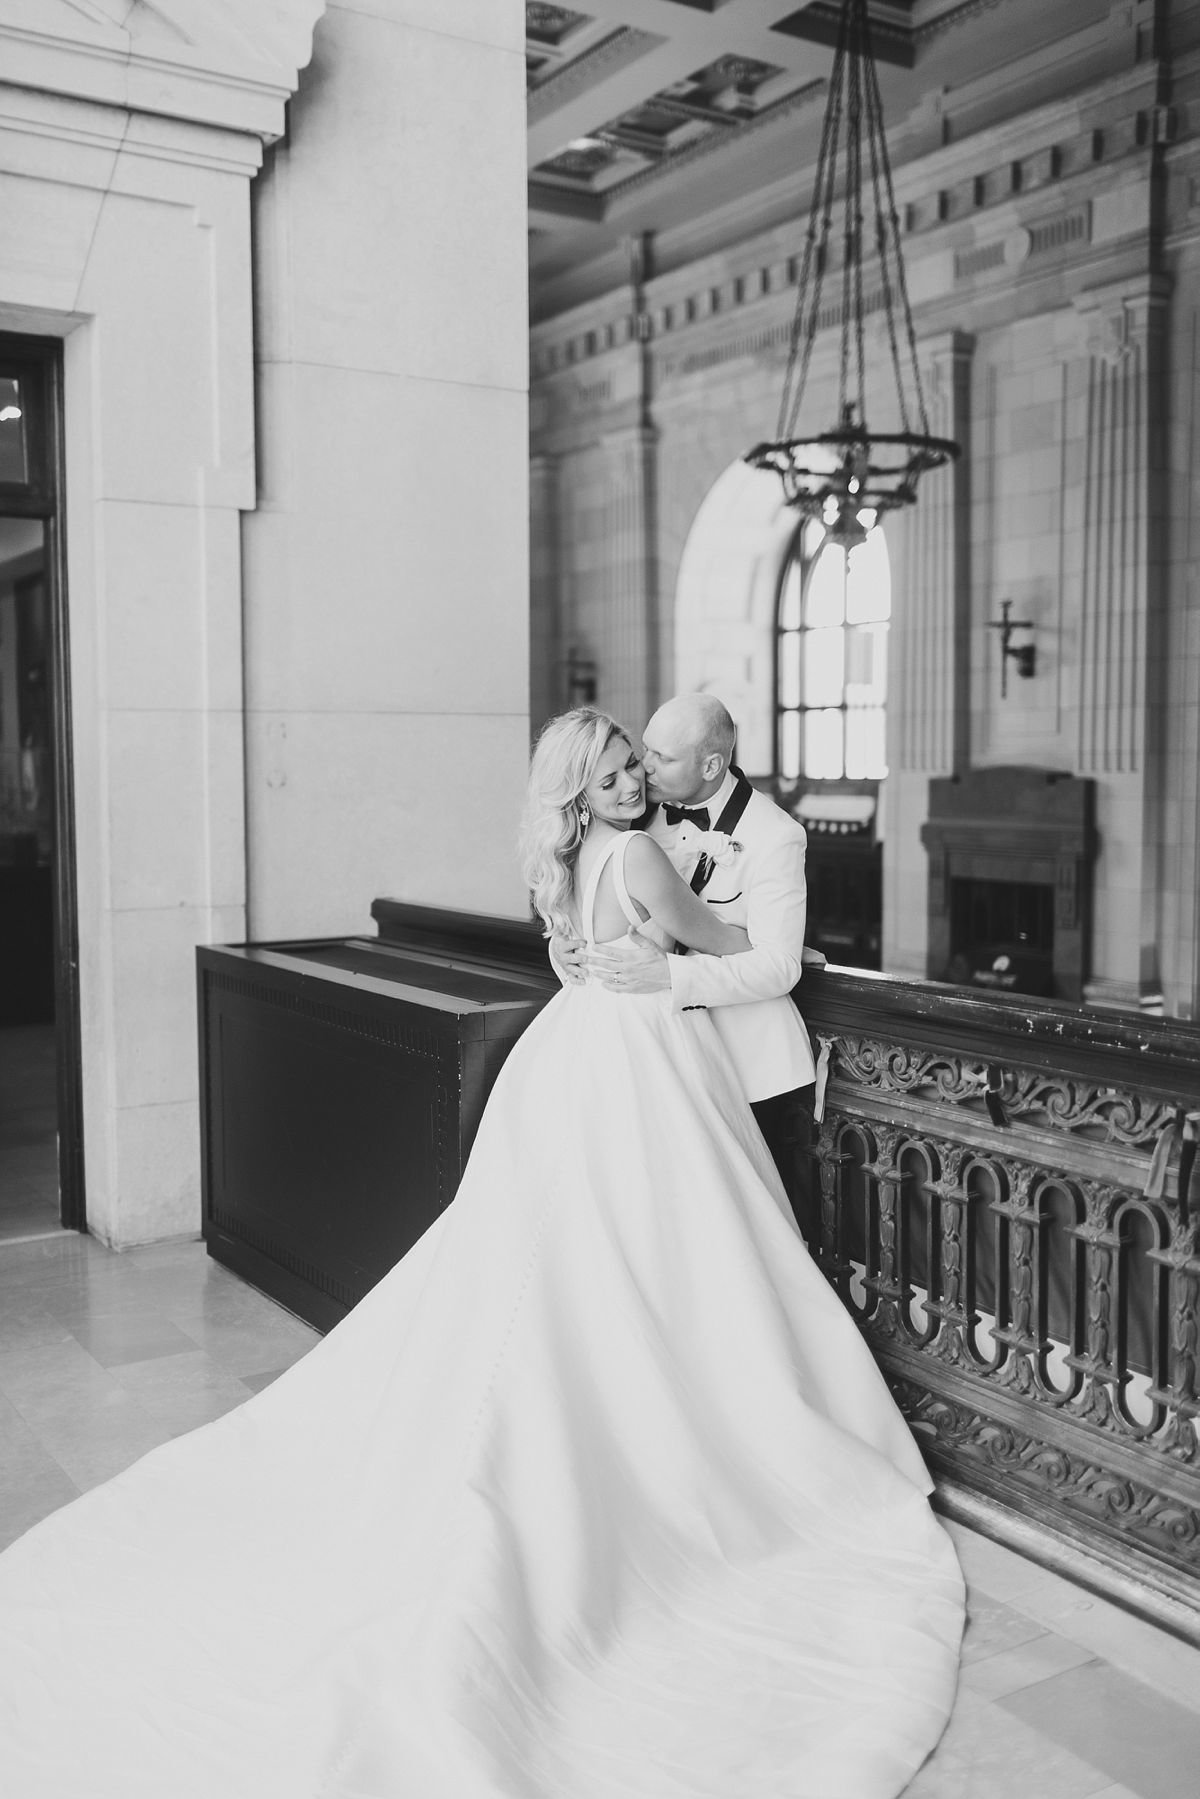 AshleyMatt_Portraits_UnionStation_KansasCityWedding_CatherineRhodesPhotography (290 of 354)-Edit-1